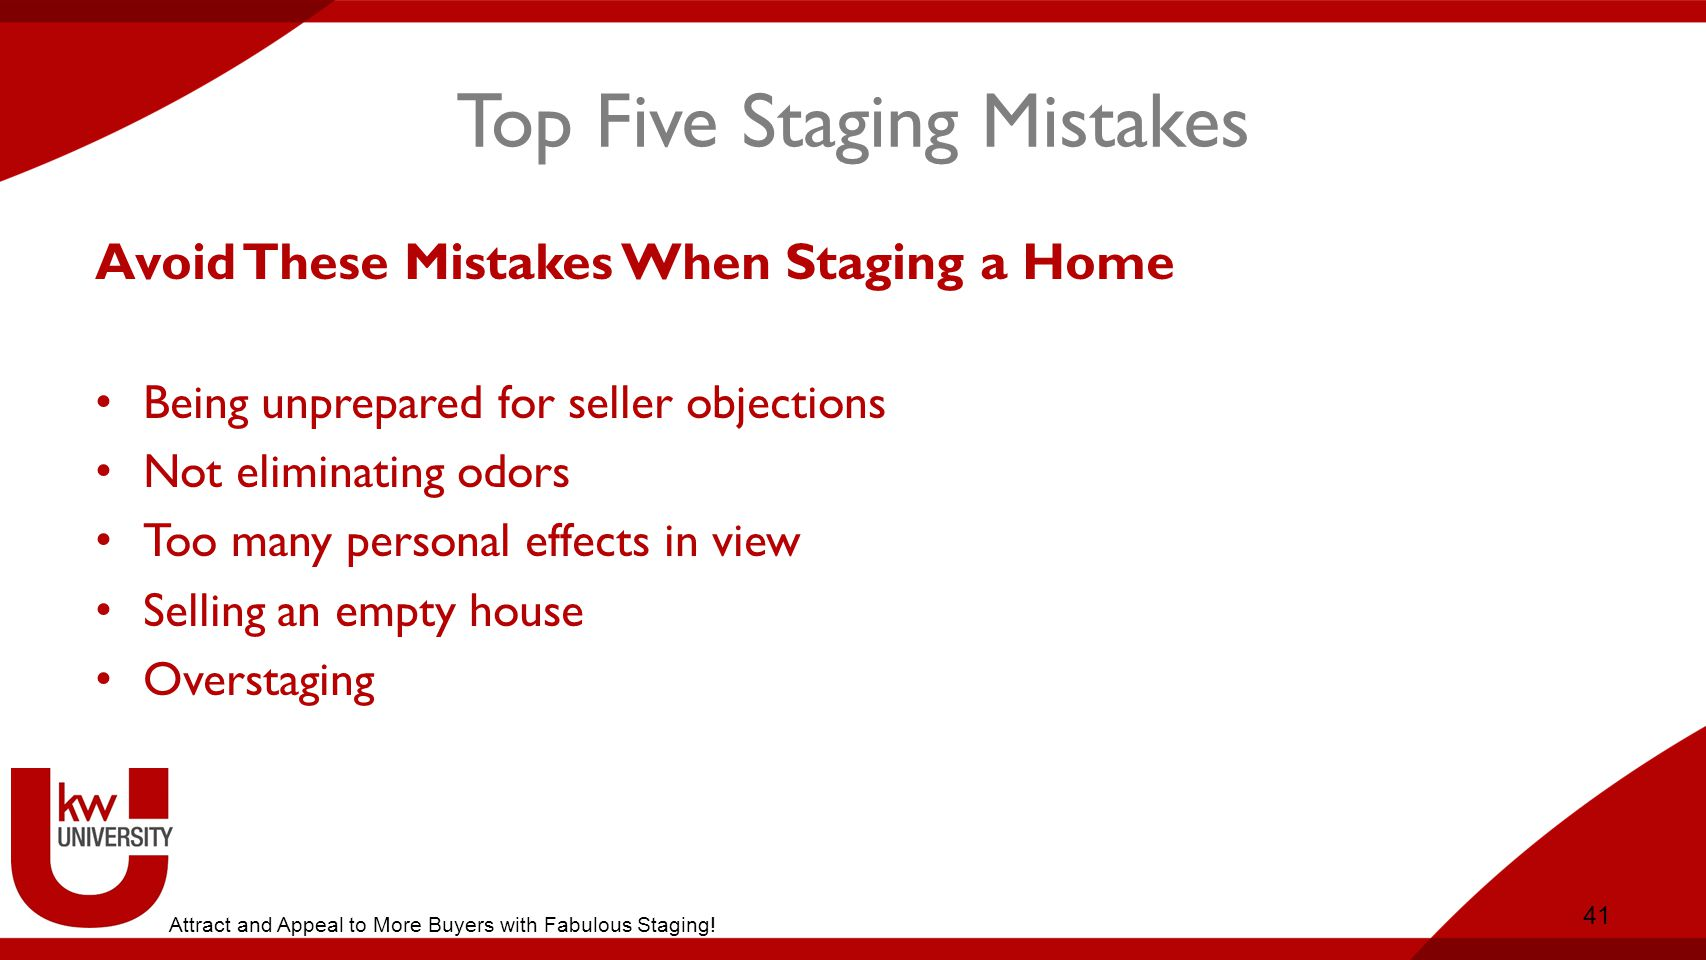 Top Five Staging Mistakes Avoid These Mistakes When Staging a Home Being unprepared for seller objections Not eliminating odors Too many personal effects in view Selling an empty house Overstaging 41 Attract and Appeal to More Buyers with Fabulous Staging!